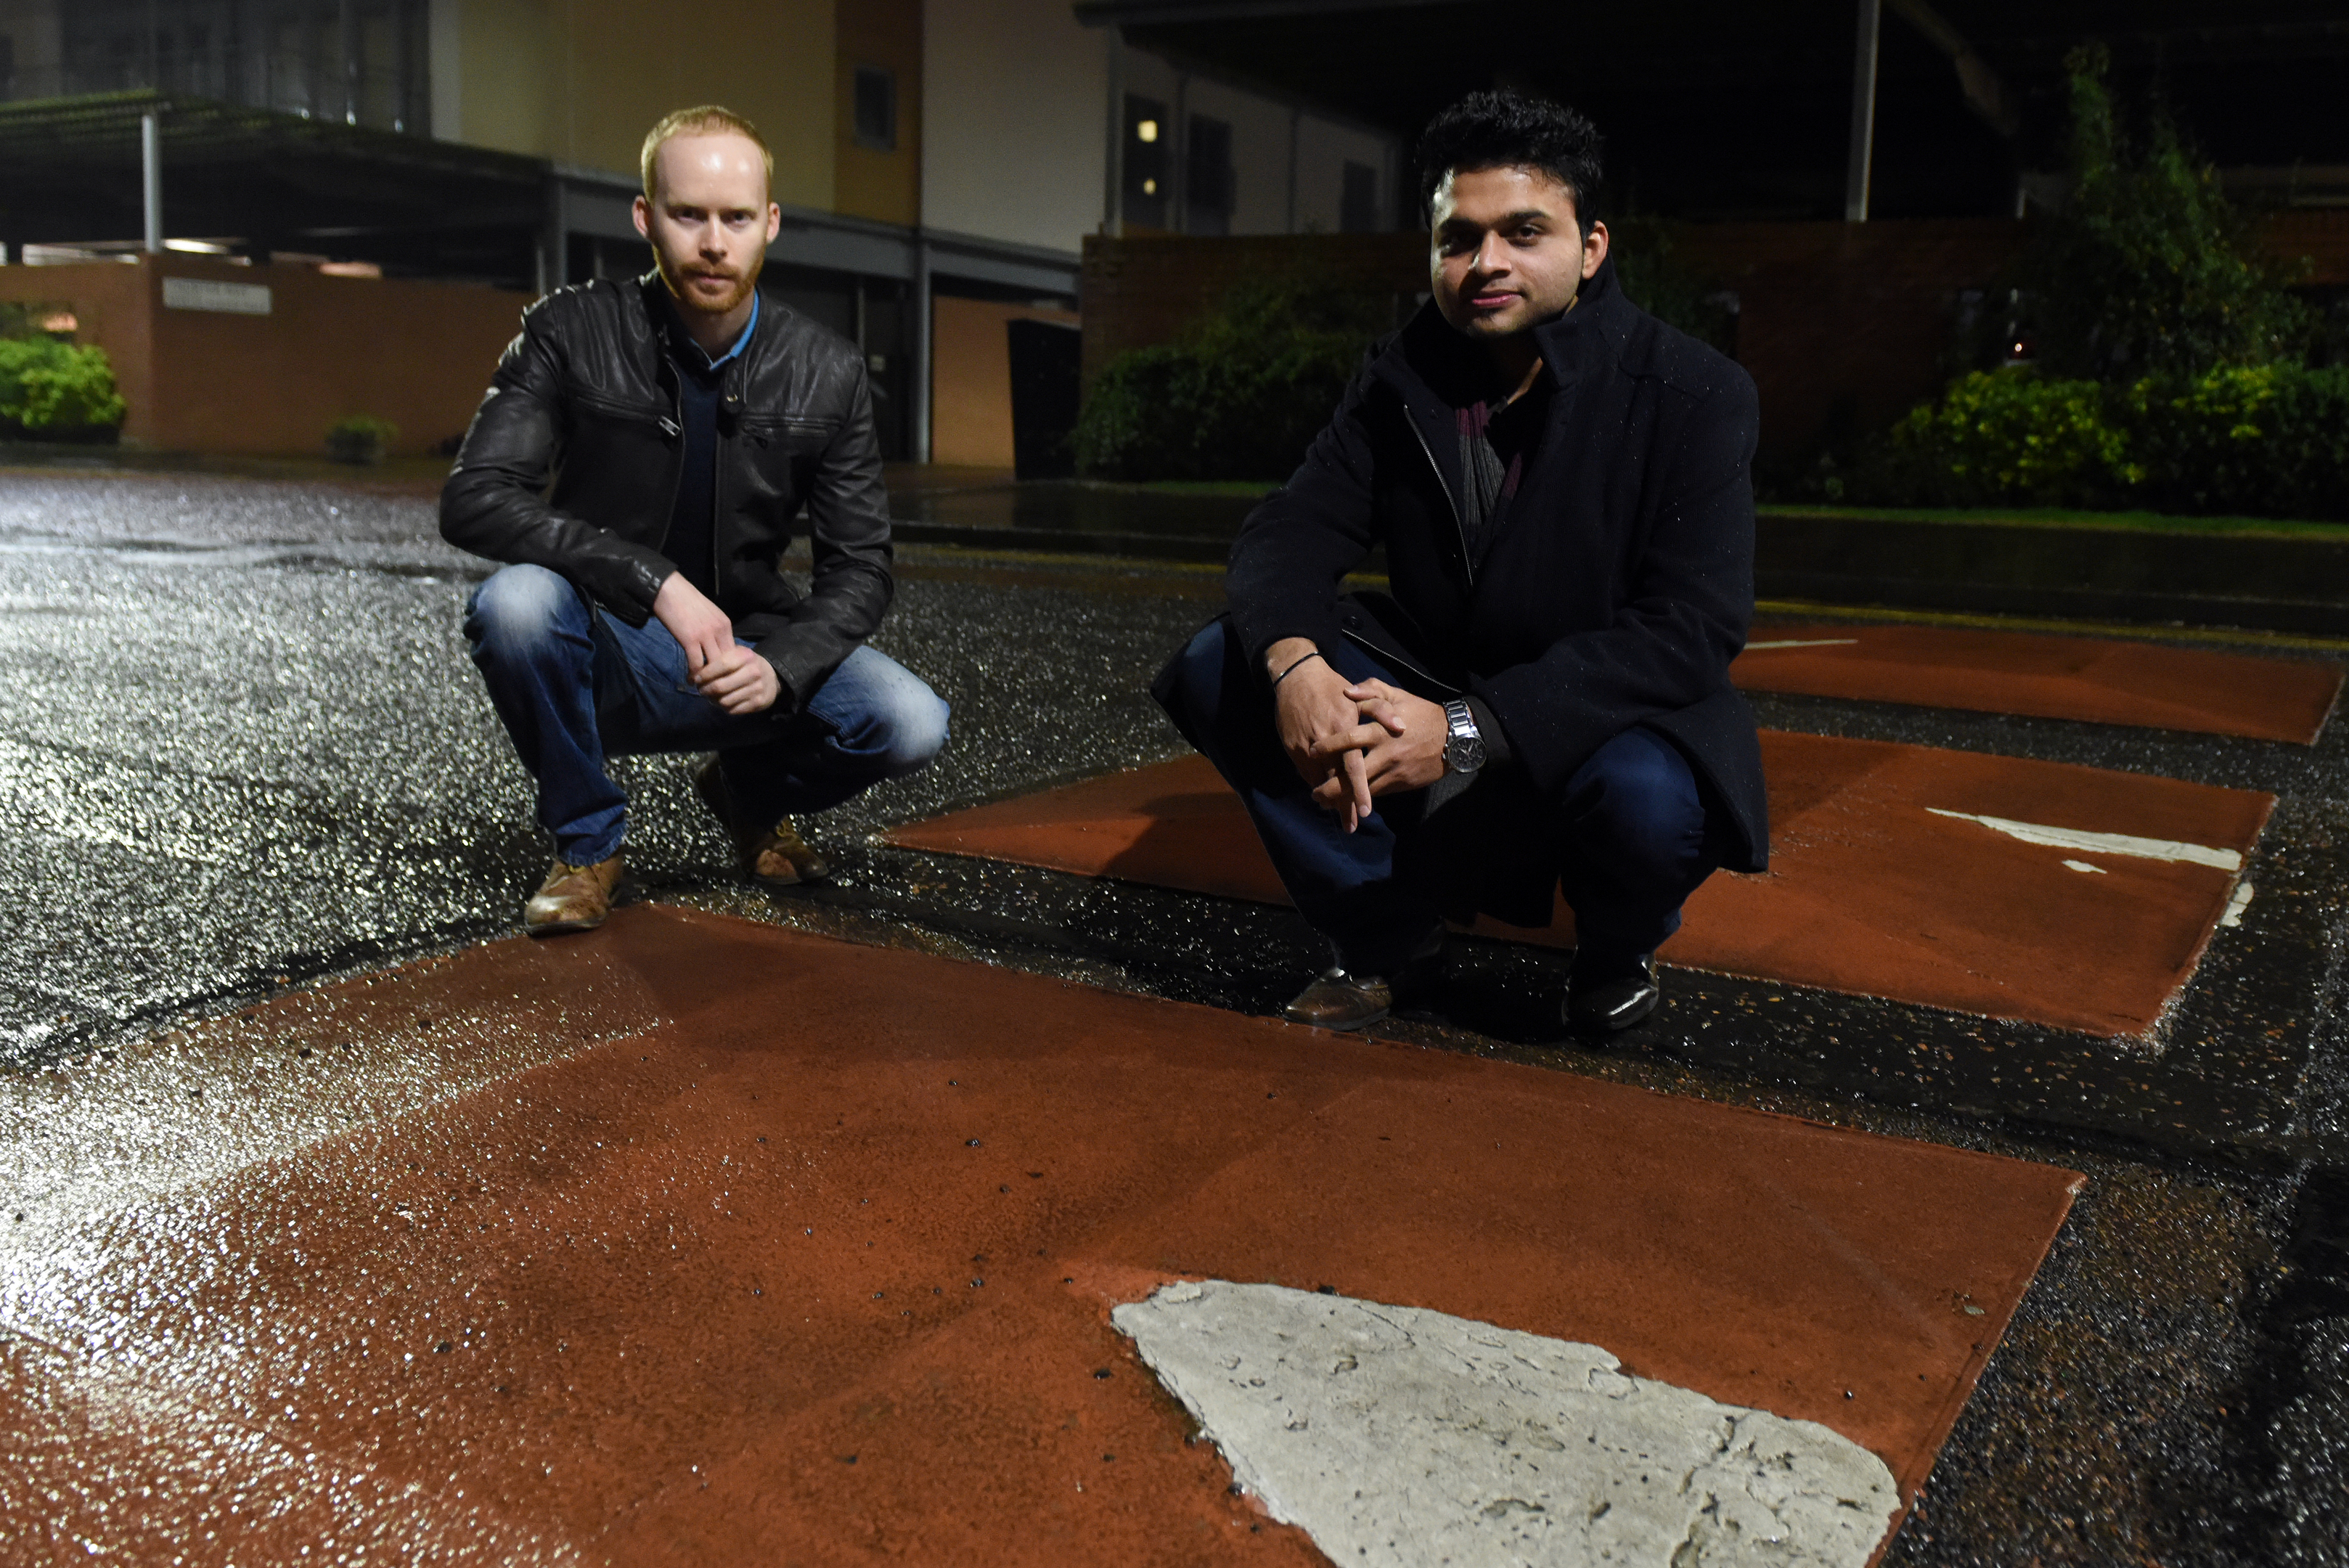 Residents say speed bumps are damaging their cars.